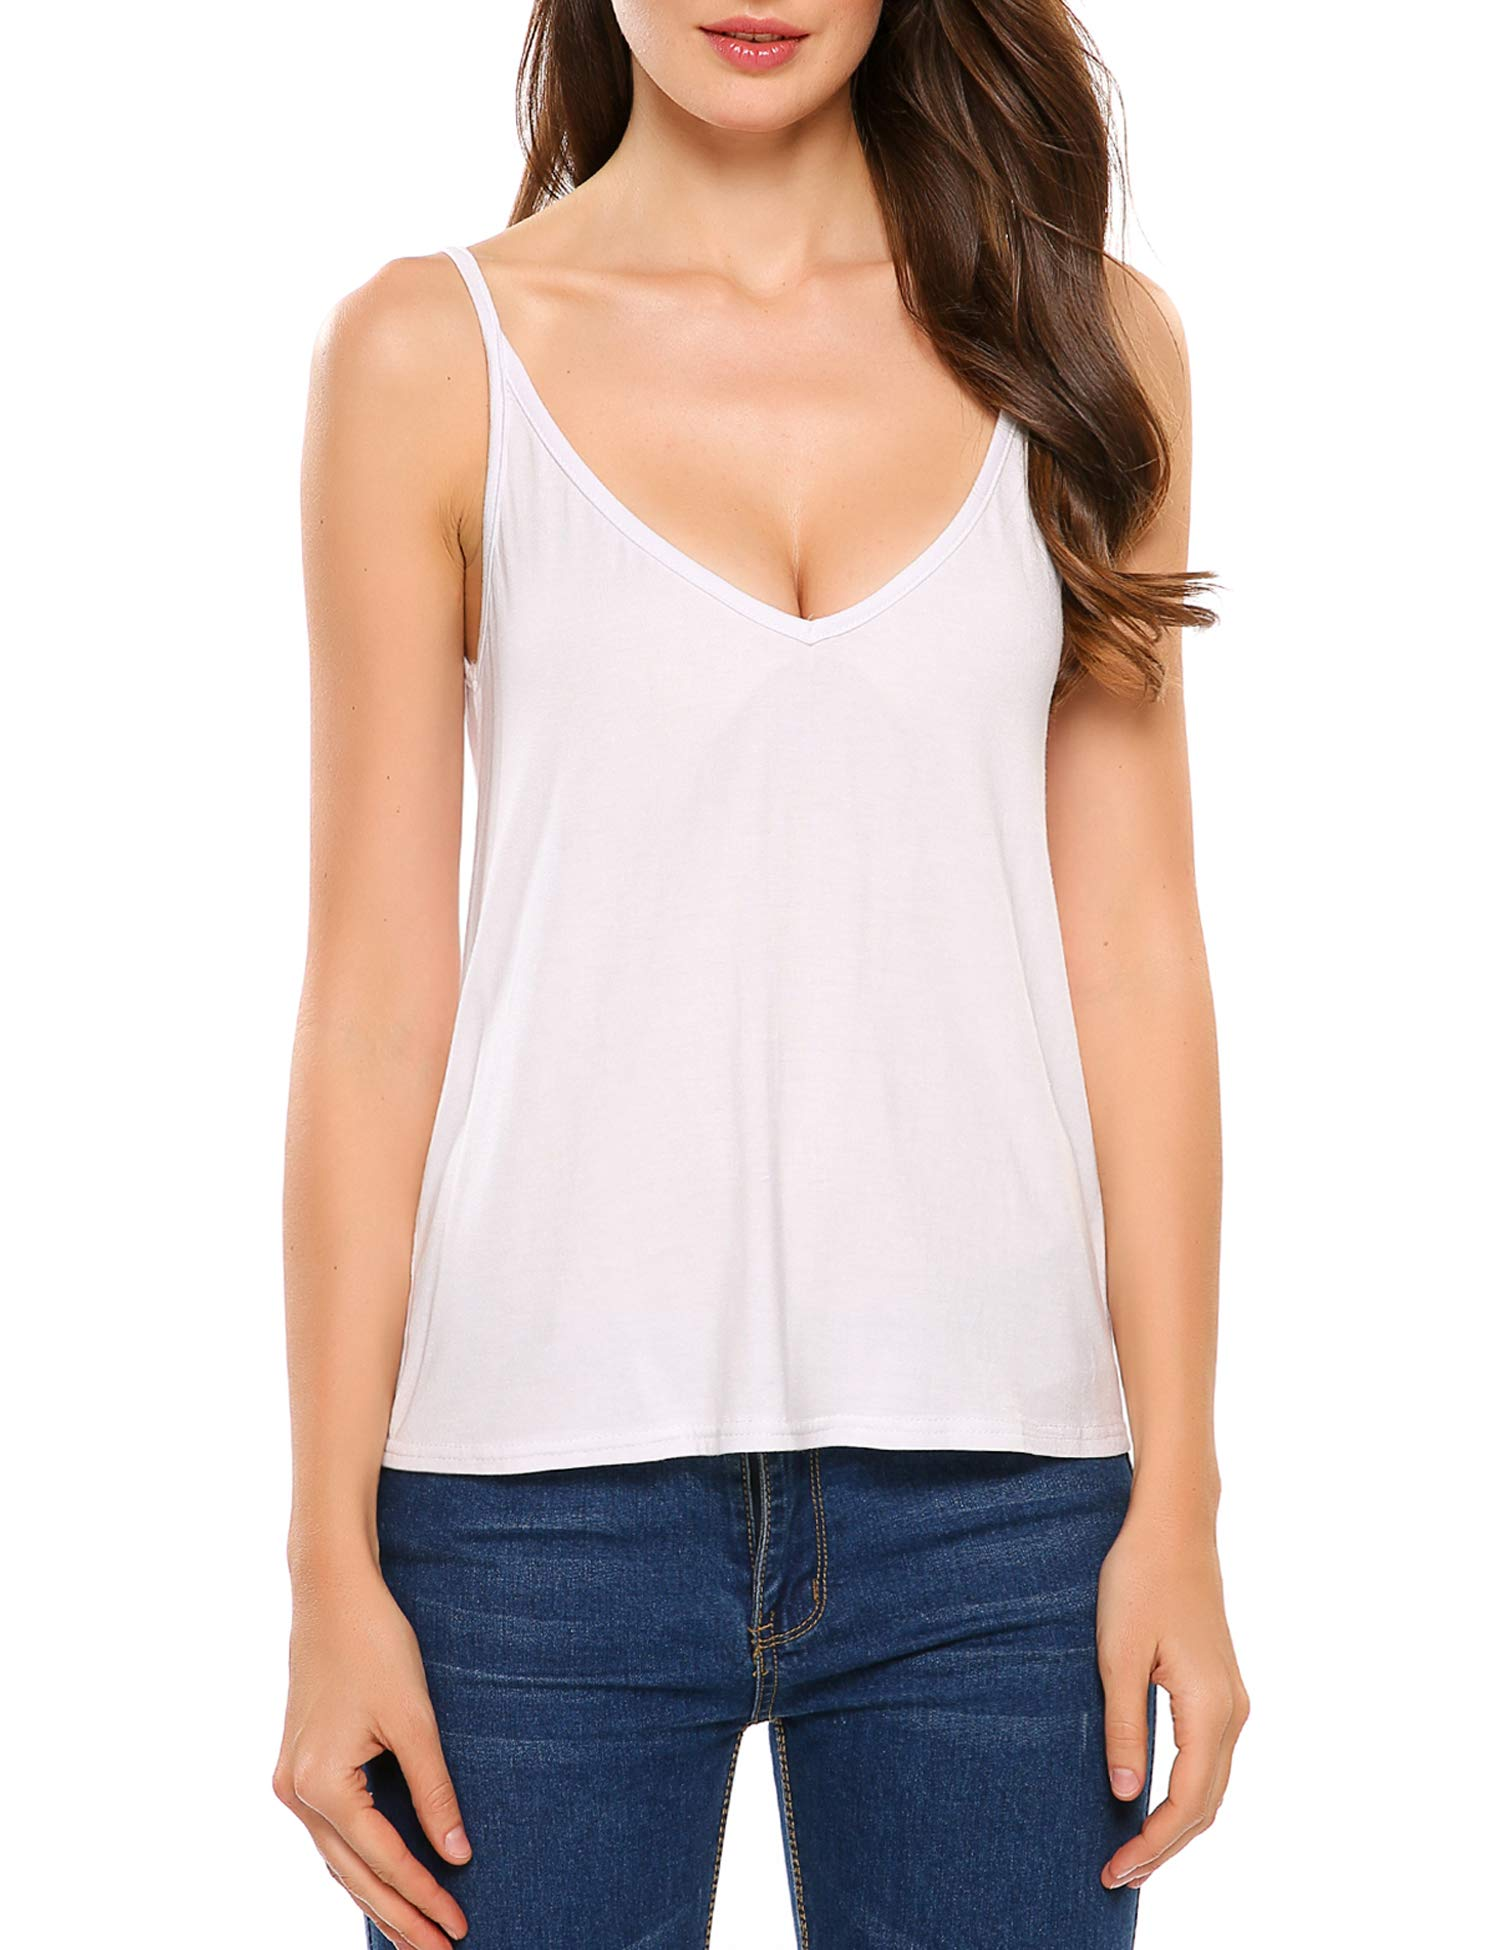 SoTeer Womens Casual Cotton Camisoles